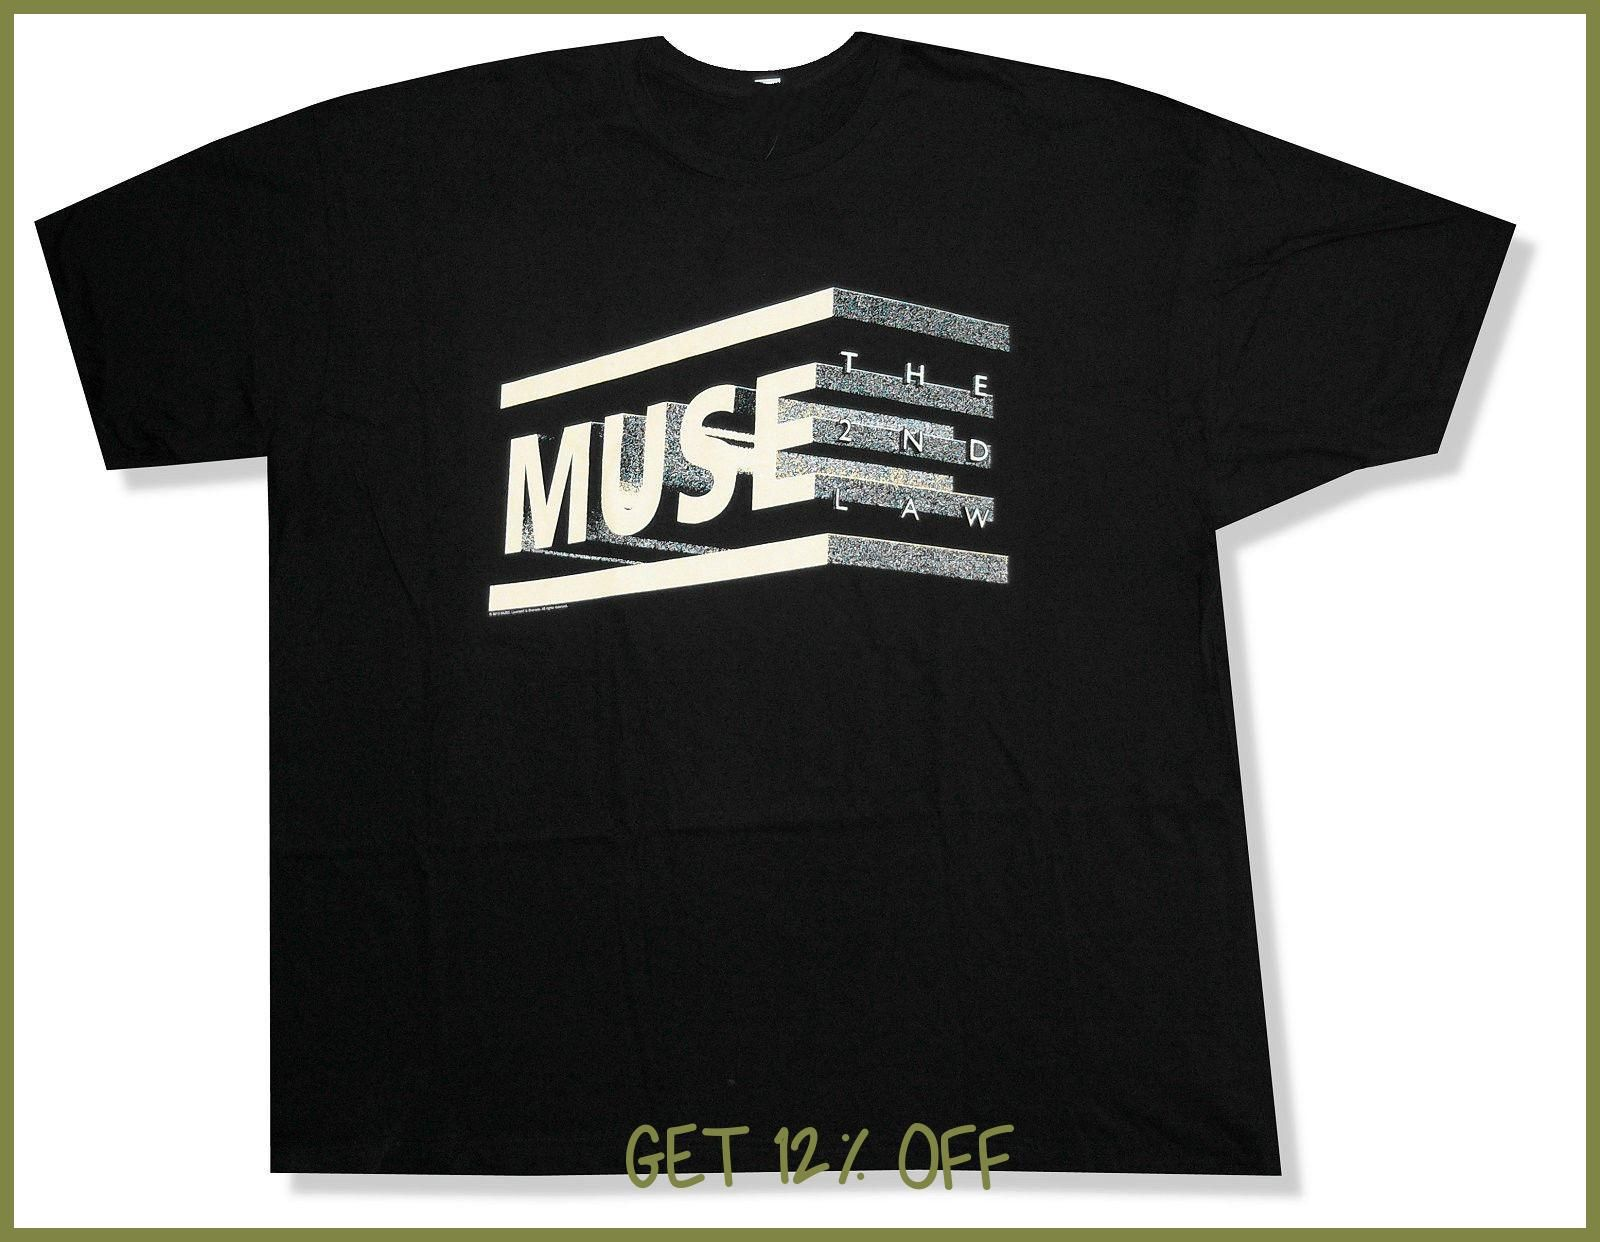 Okoufen Muse The 2nd Law Album Black T Shirt New Official Adult  # Sacudir Los Muebles Meaning